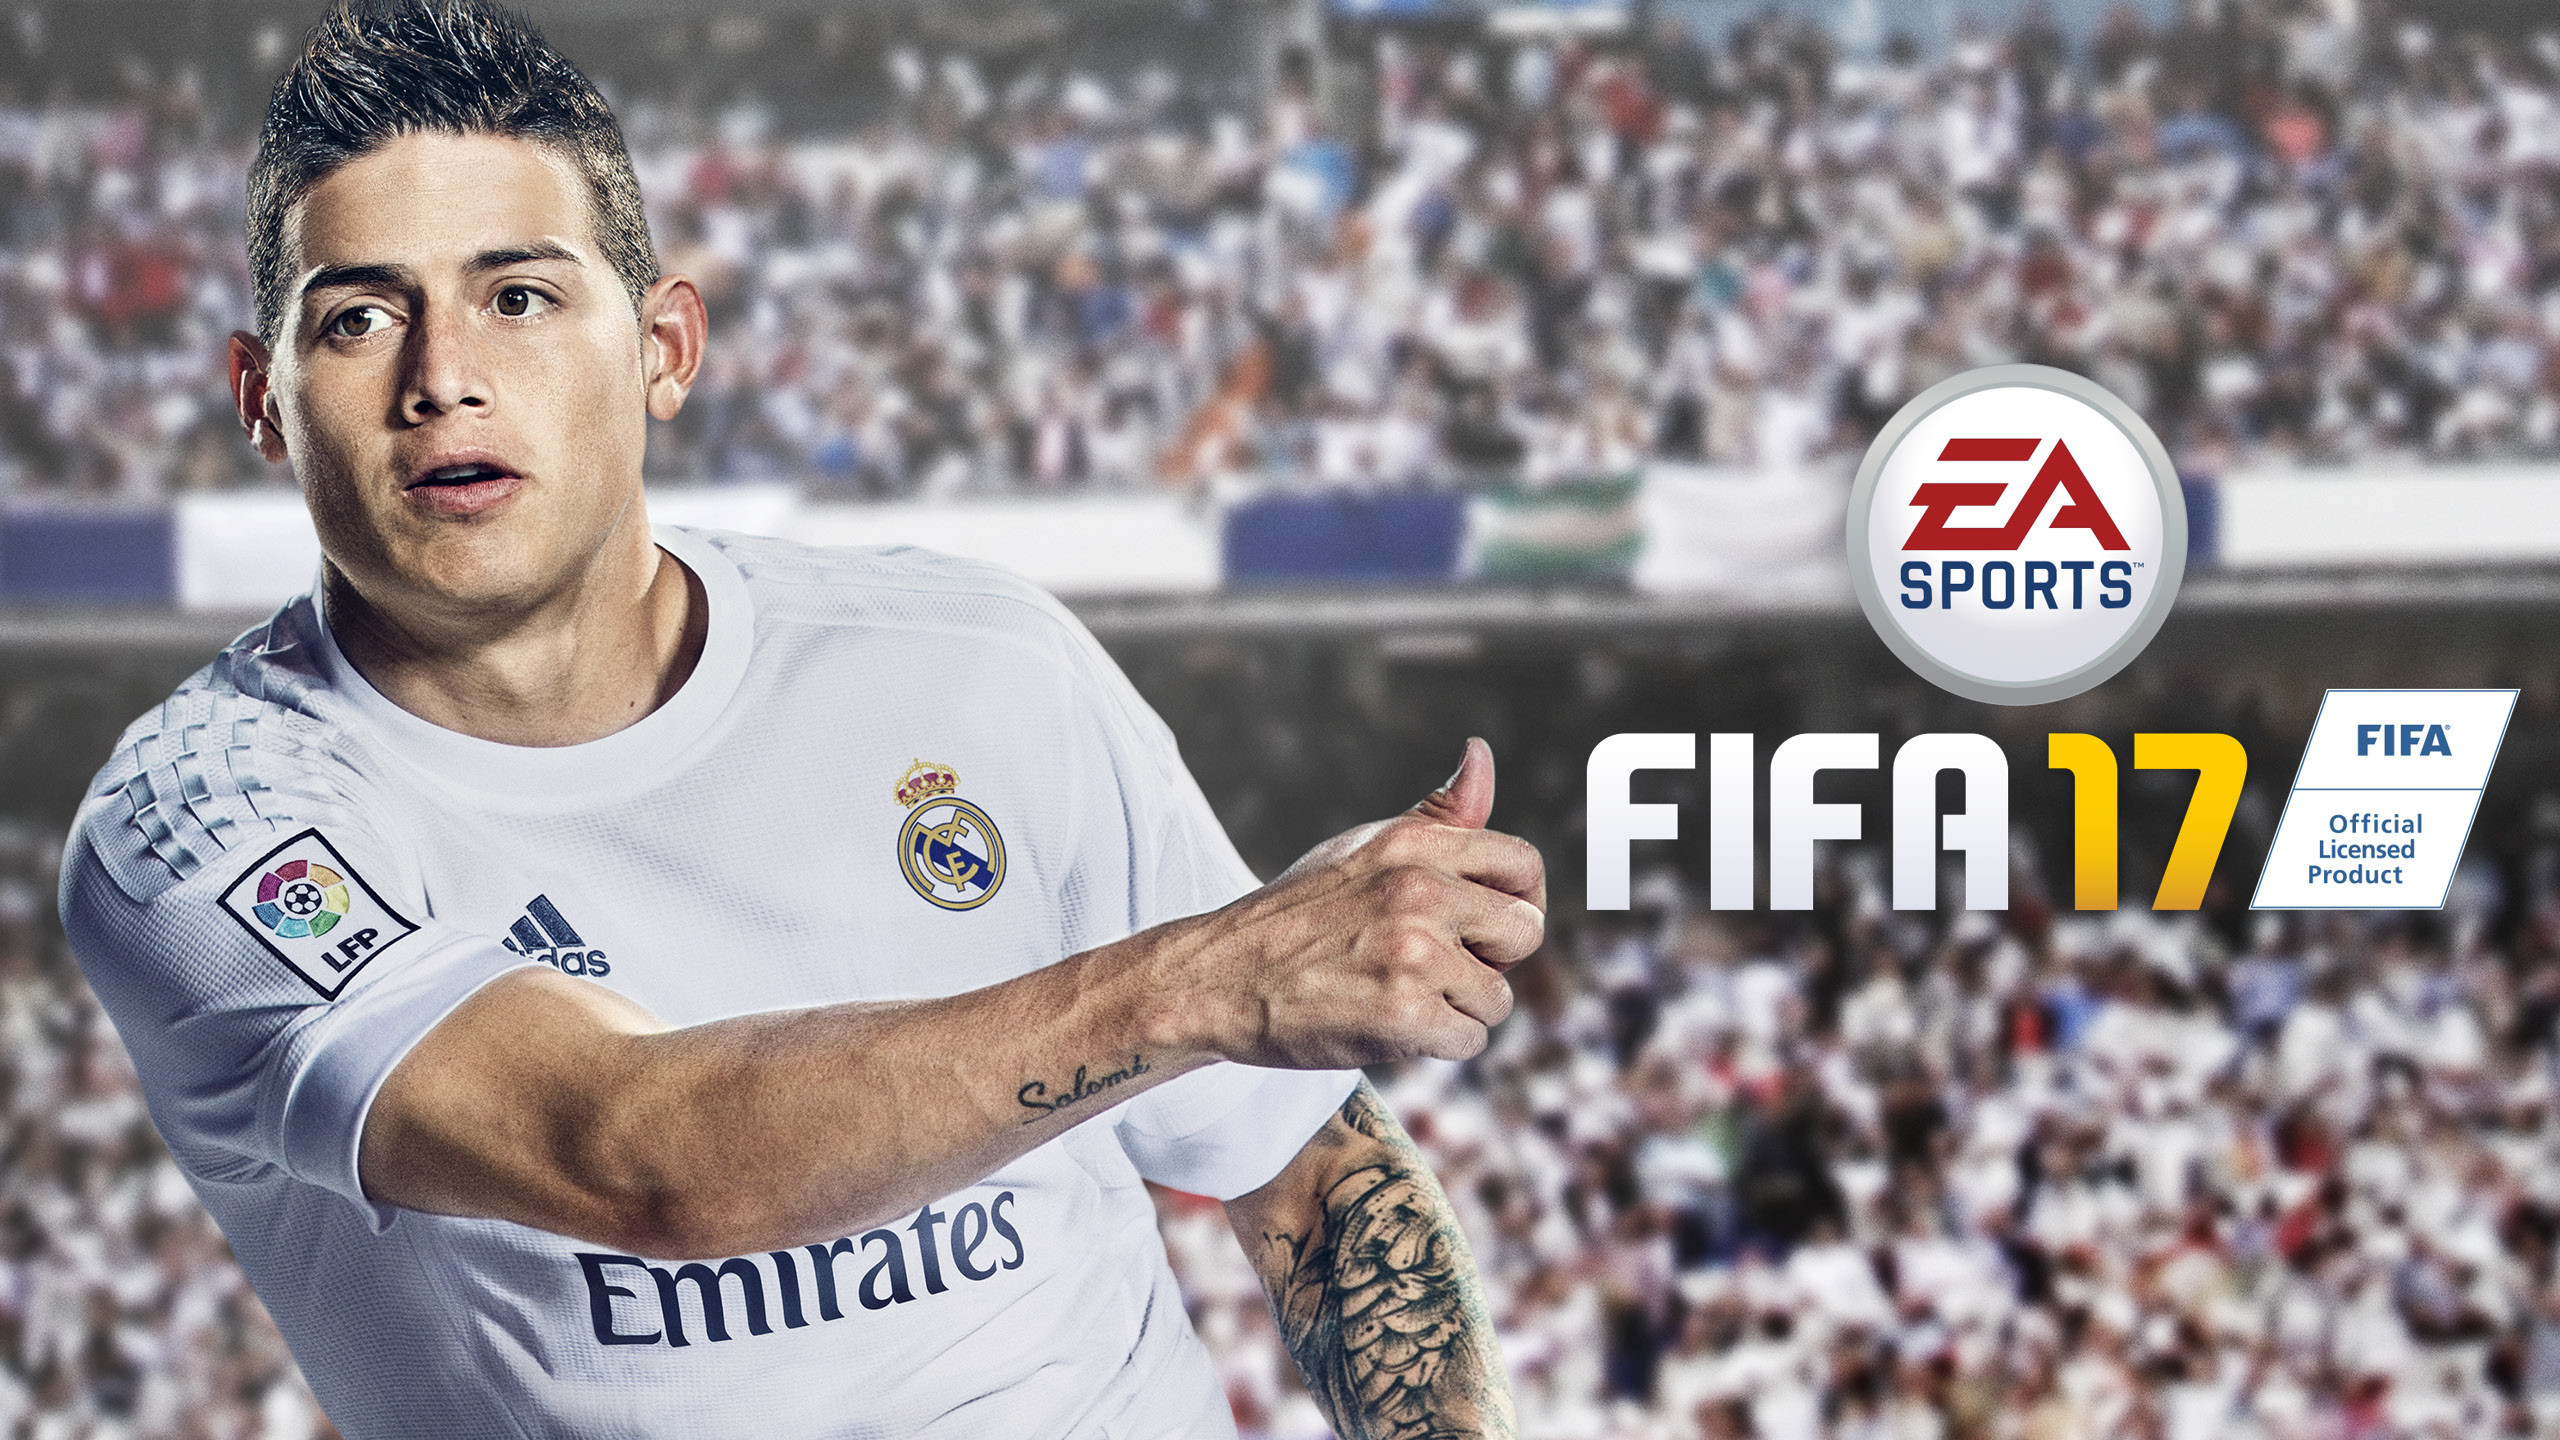 2560x1440 James Rodriguez FIFA 17 EA Sports Football Game HD